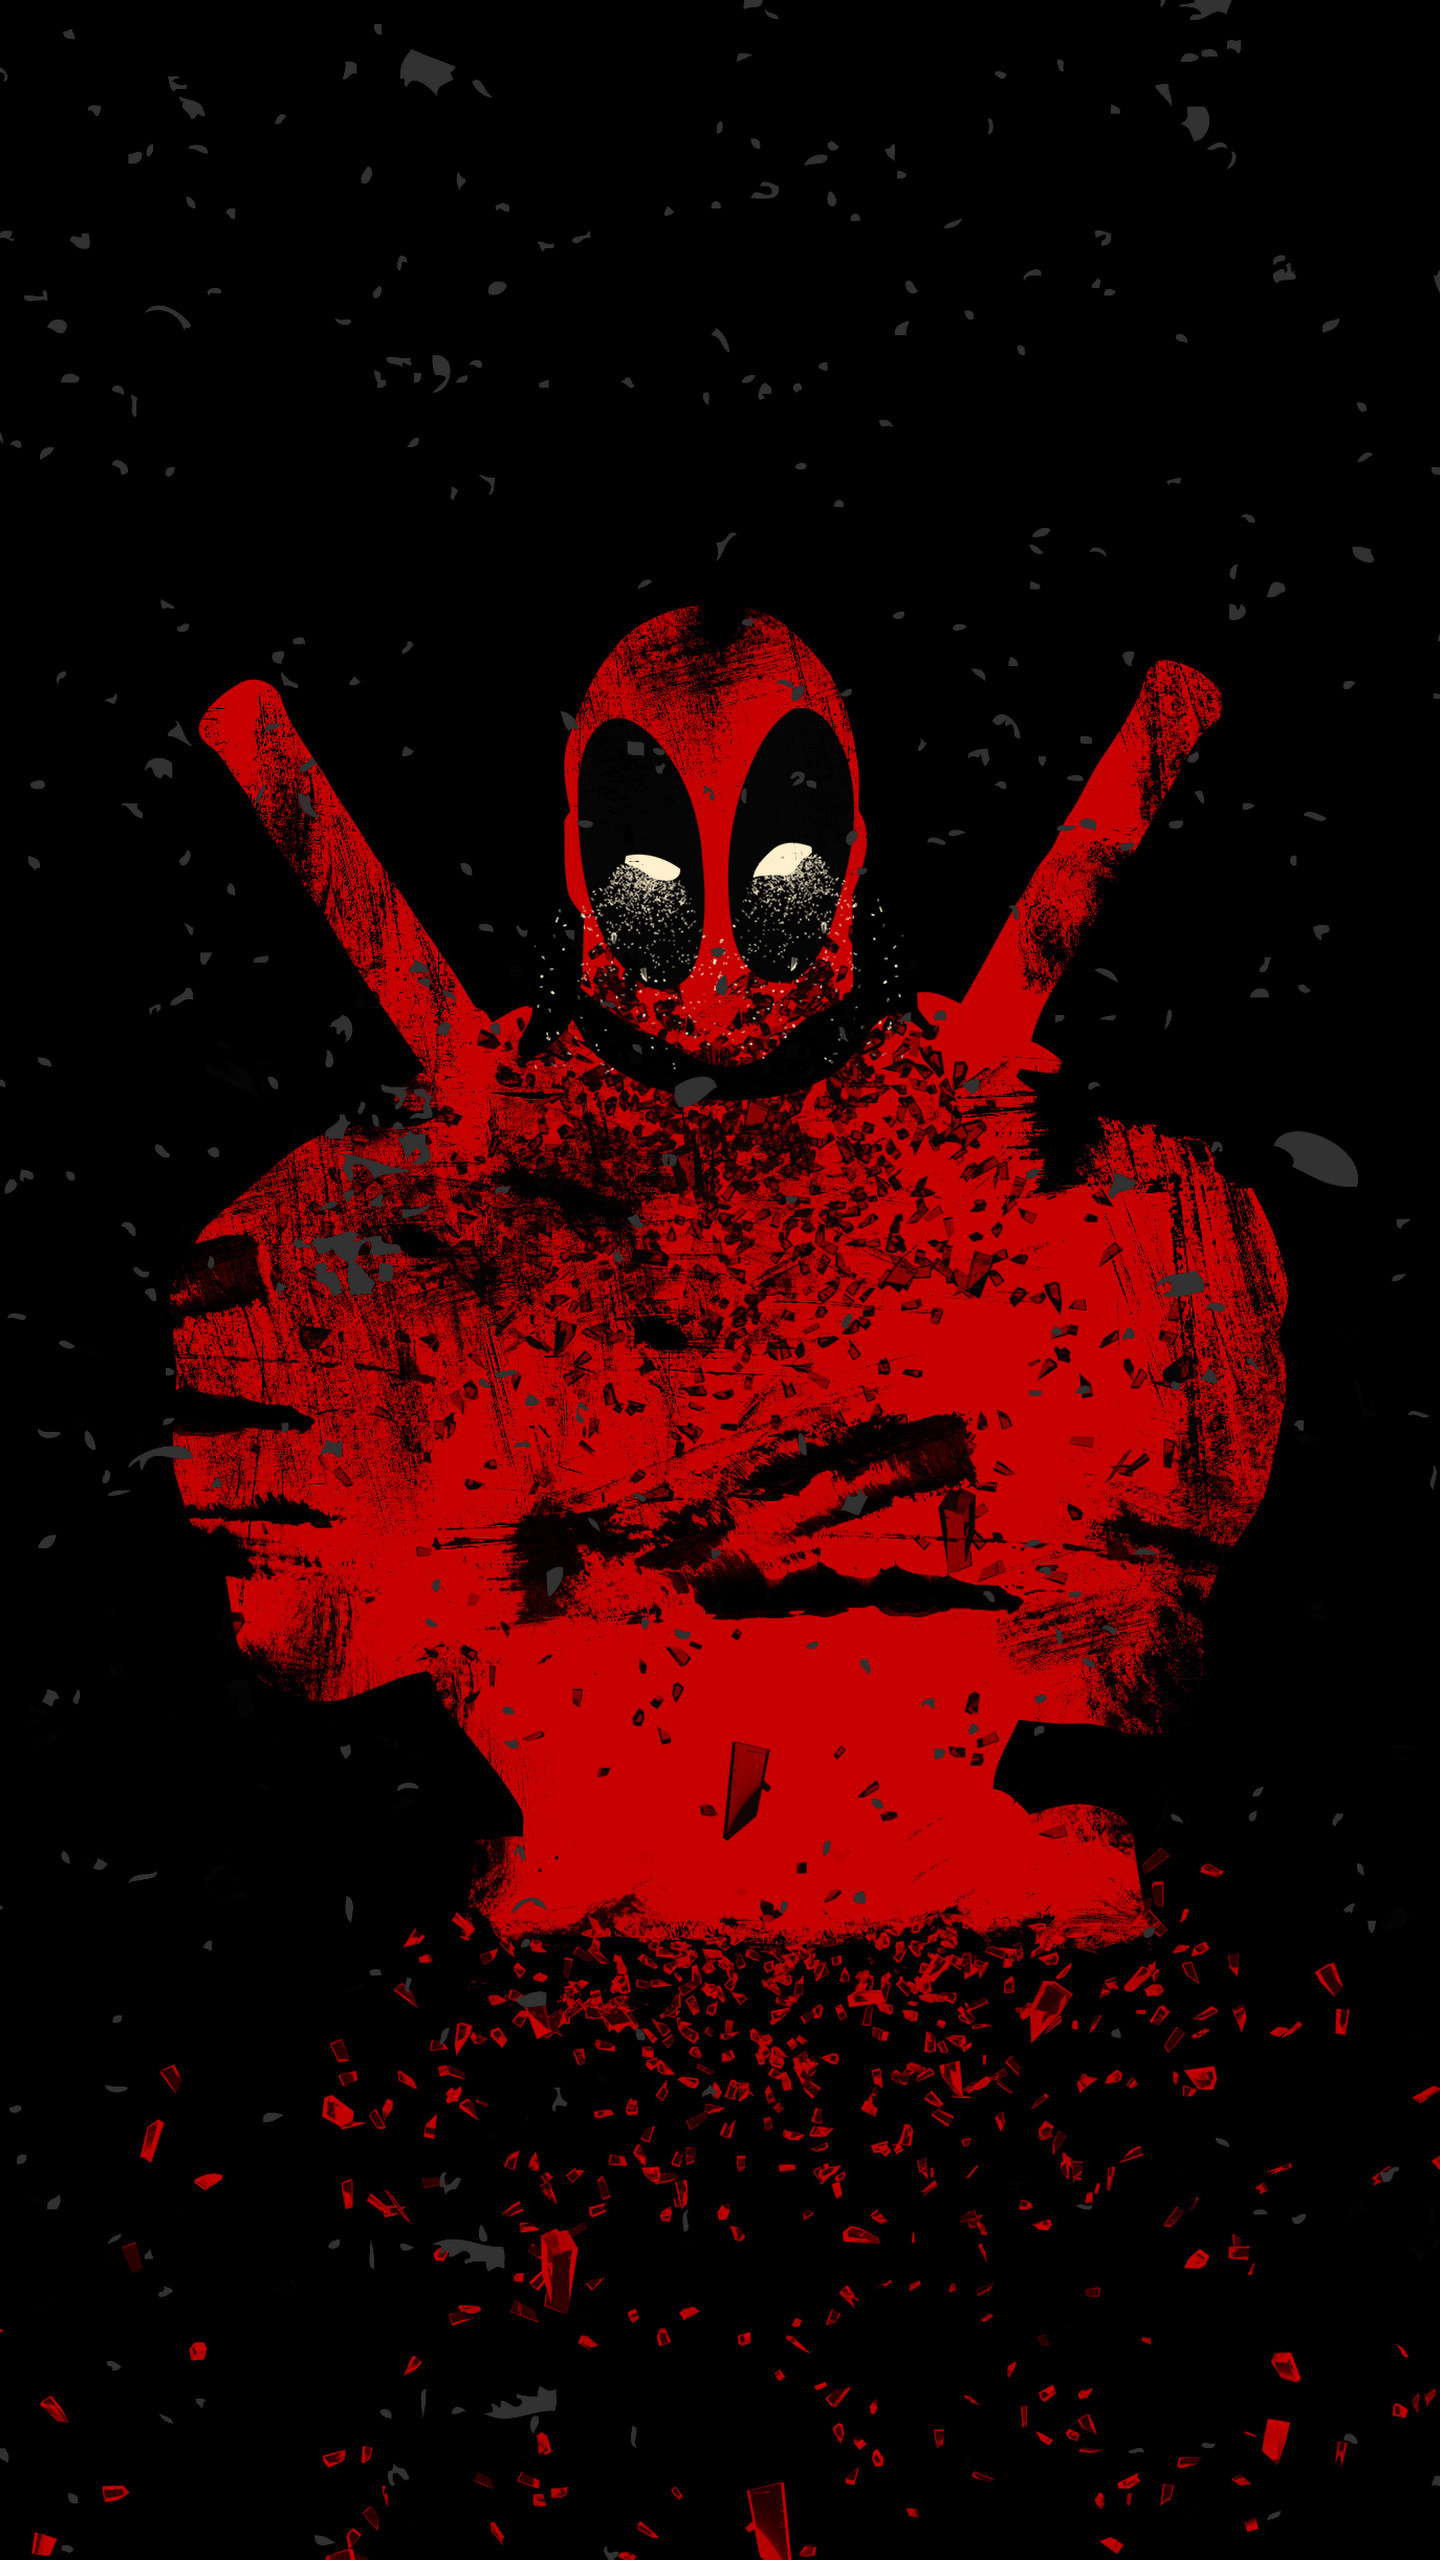 Download 1440x2630 Wallpaper Deadpool Shattered Art Abstract Samsung Galaxy Note 8 1440x2630 Hd Image Background 2195